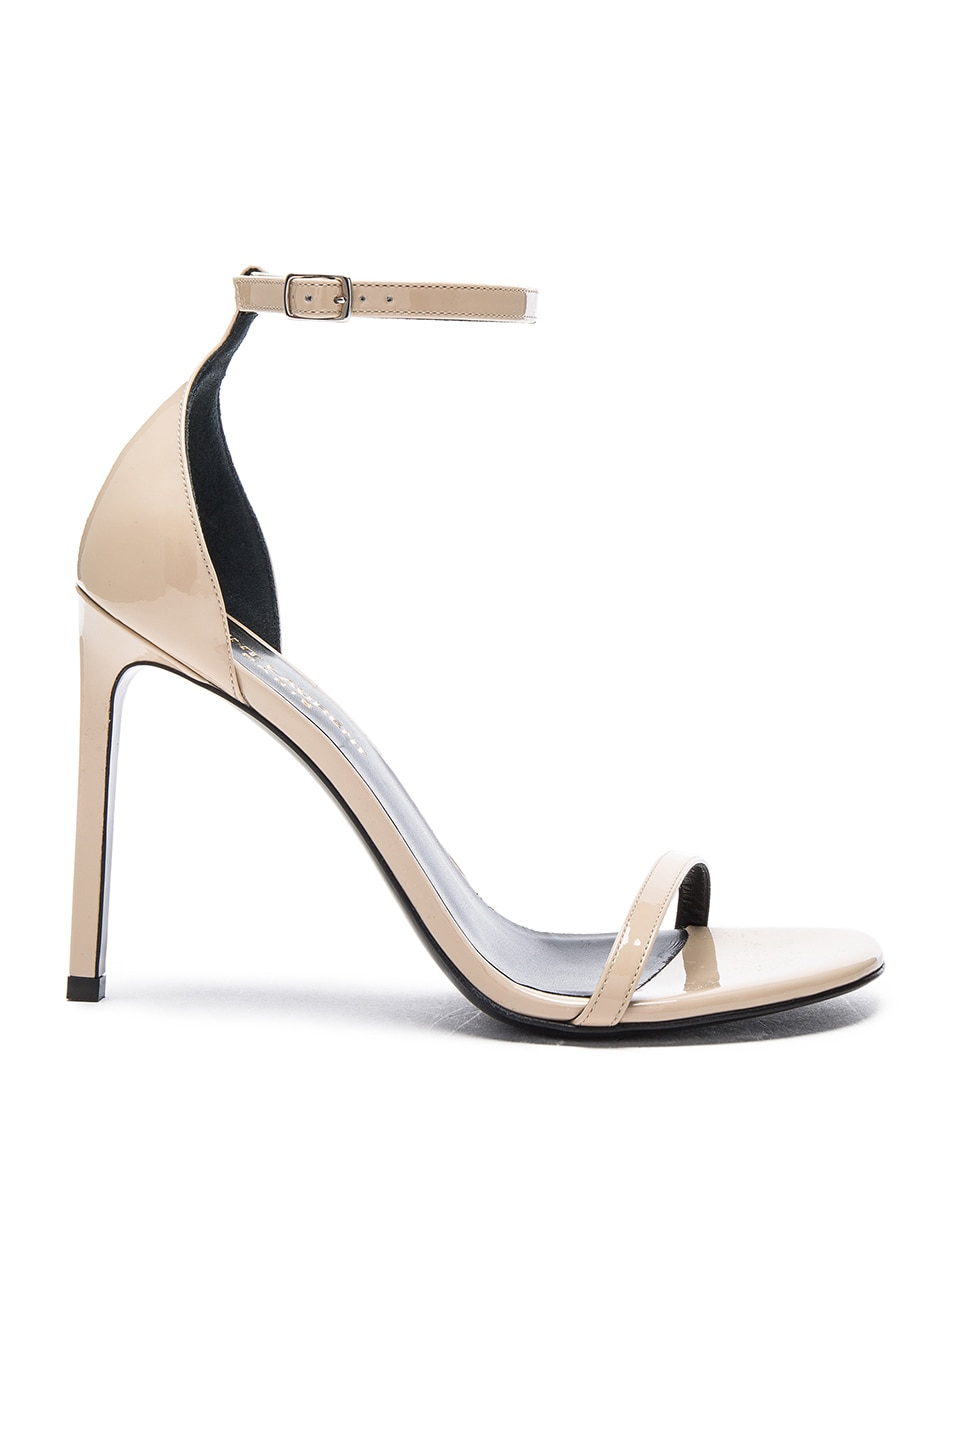 Image 1 of Saint Laurent Patent Leather Jane Sandals in Poudre